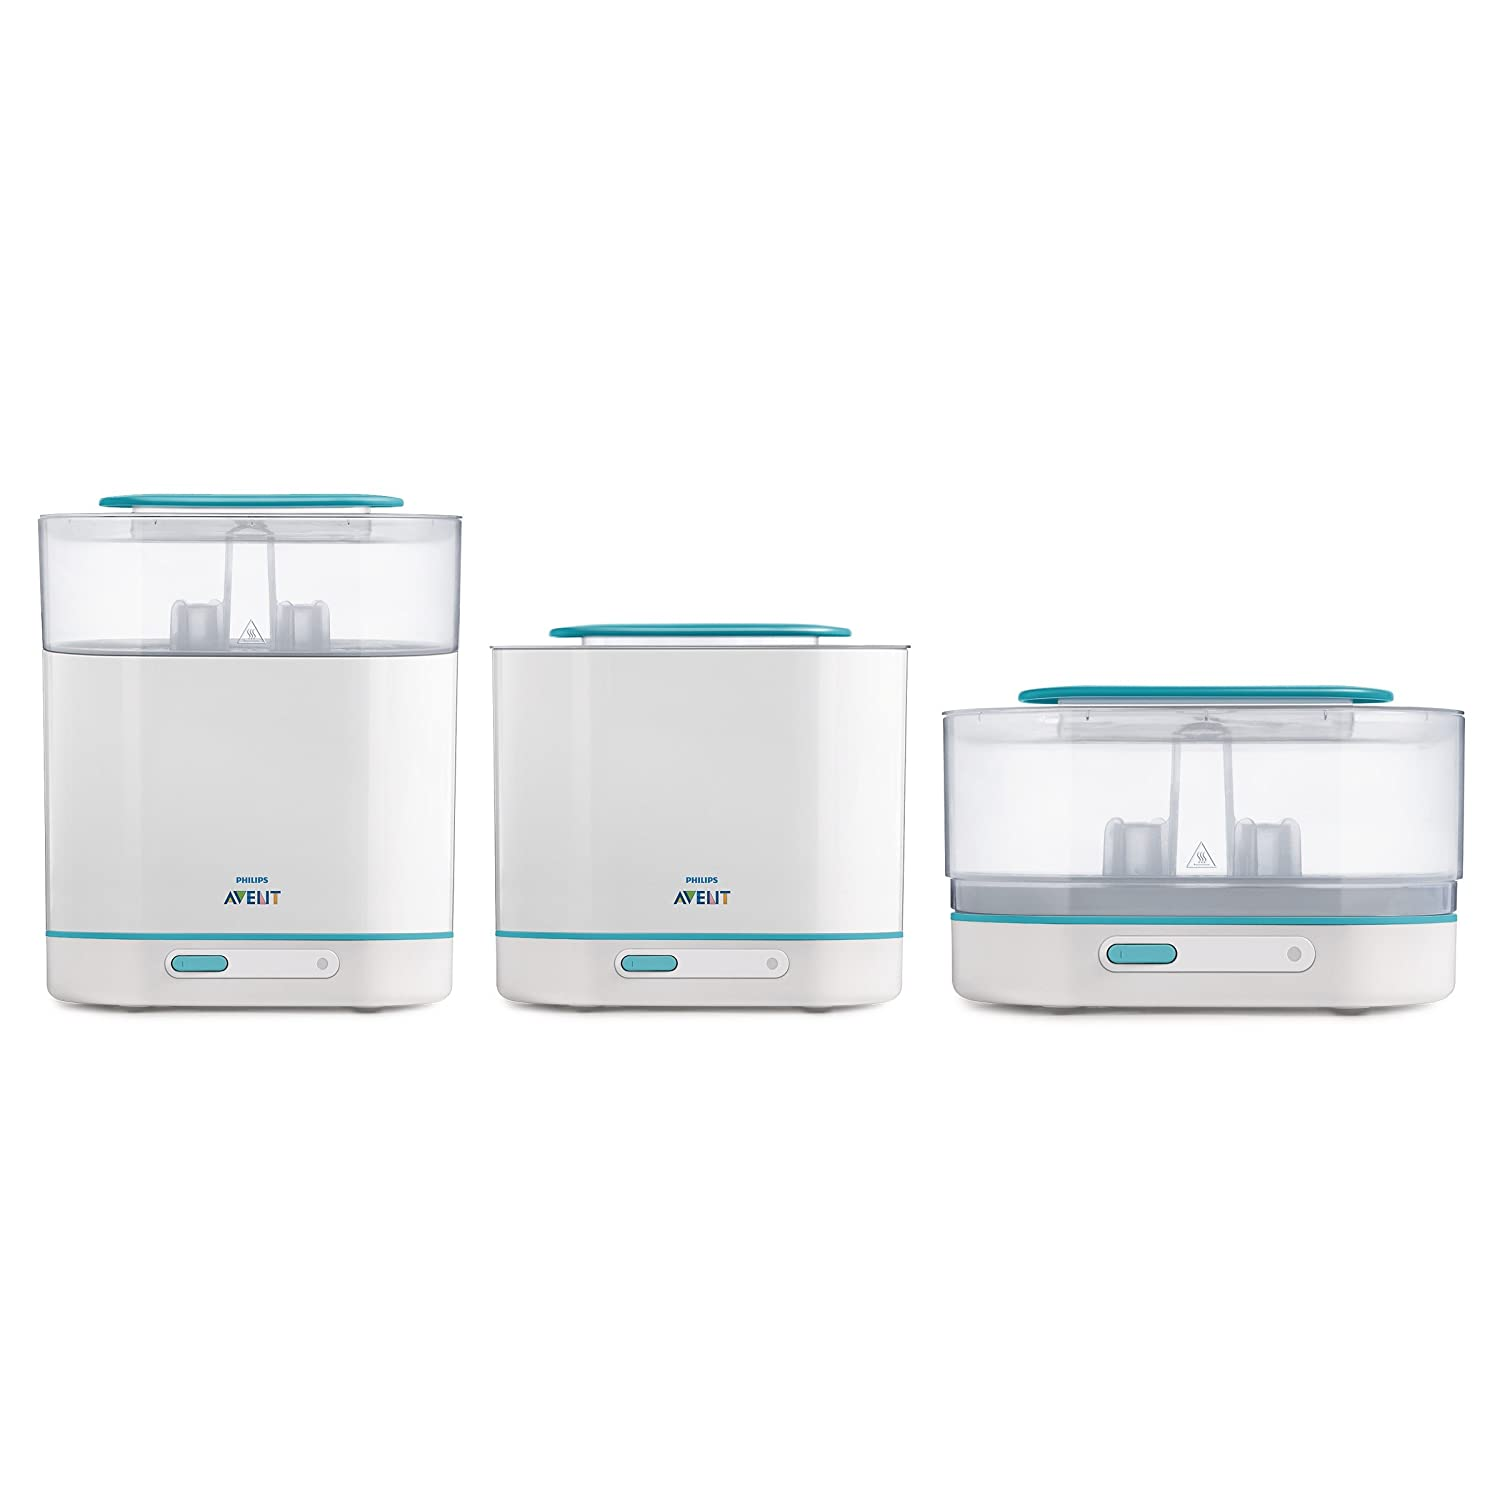 Máy tiệt trùng bình sữa Philips AVENT 3-in-1 Electric Steam Sterilizer